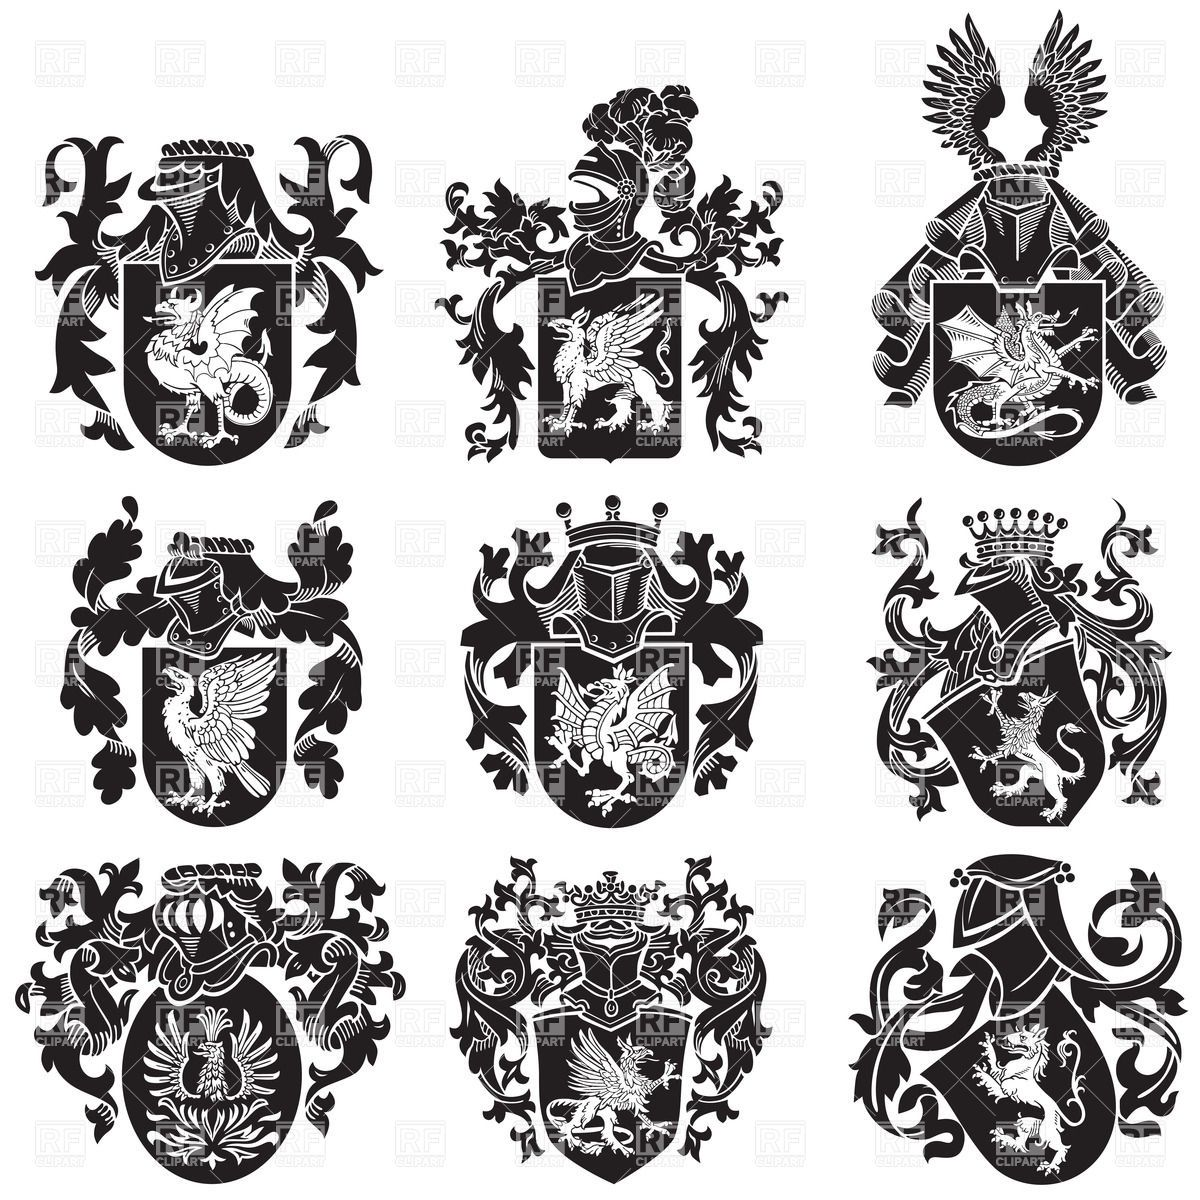 medieval-heraldic-coat-of-arms-with-mythological-animals-Download ...